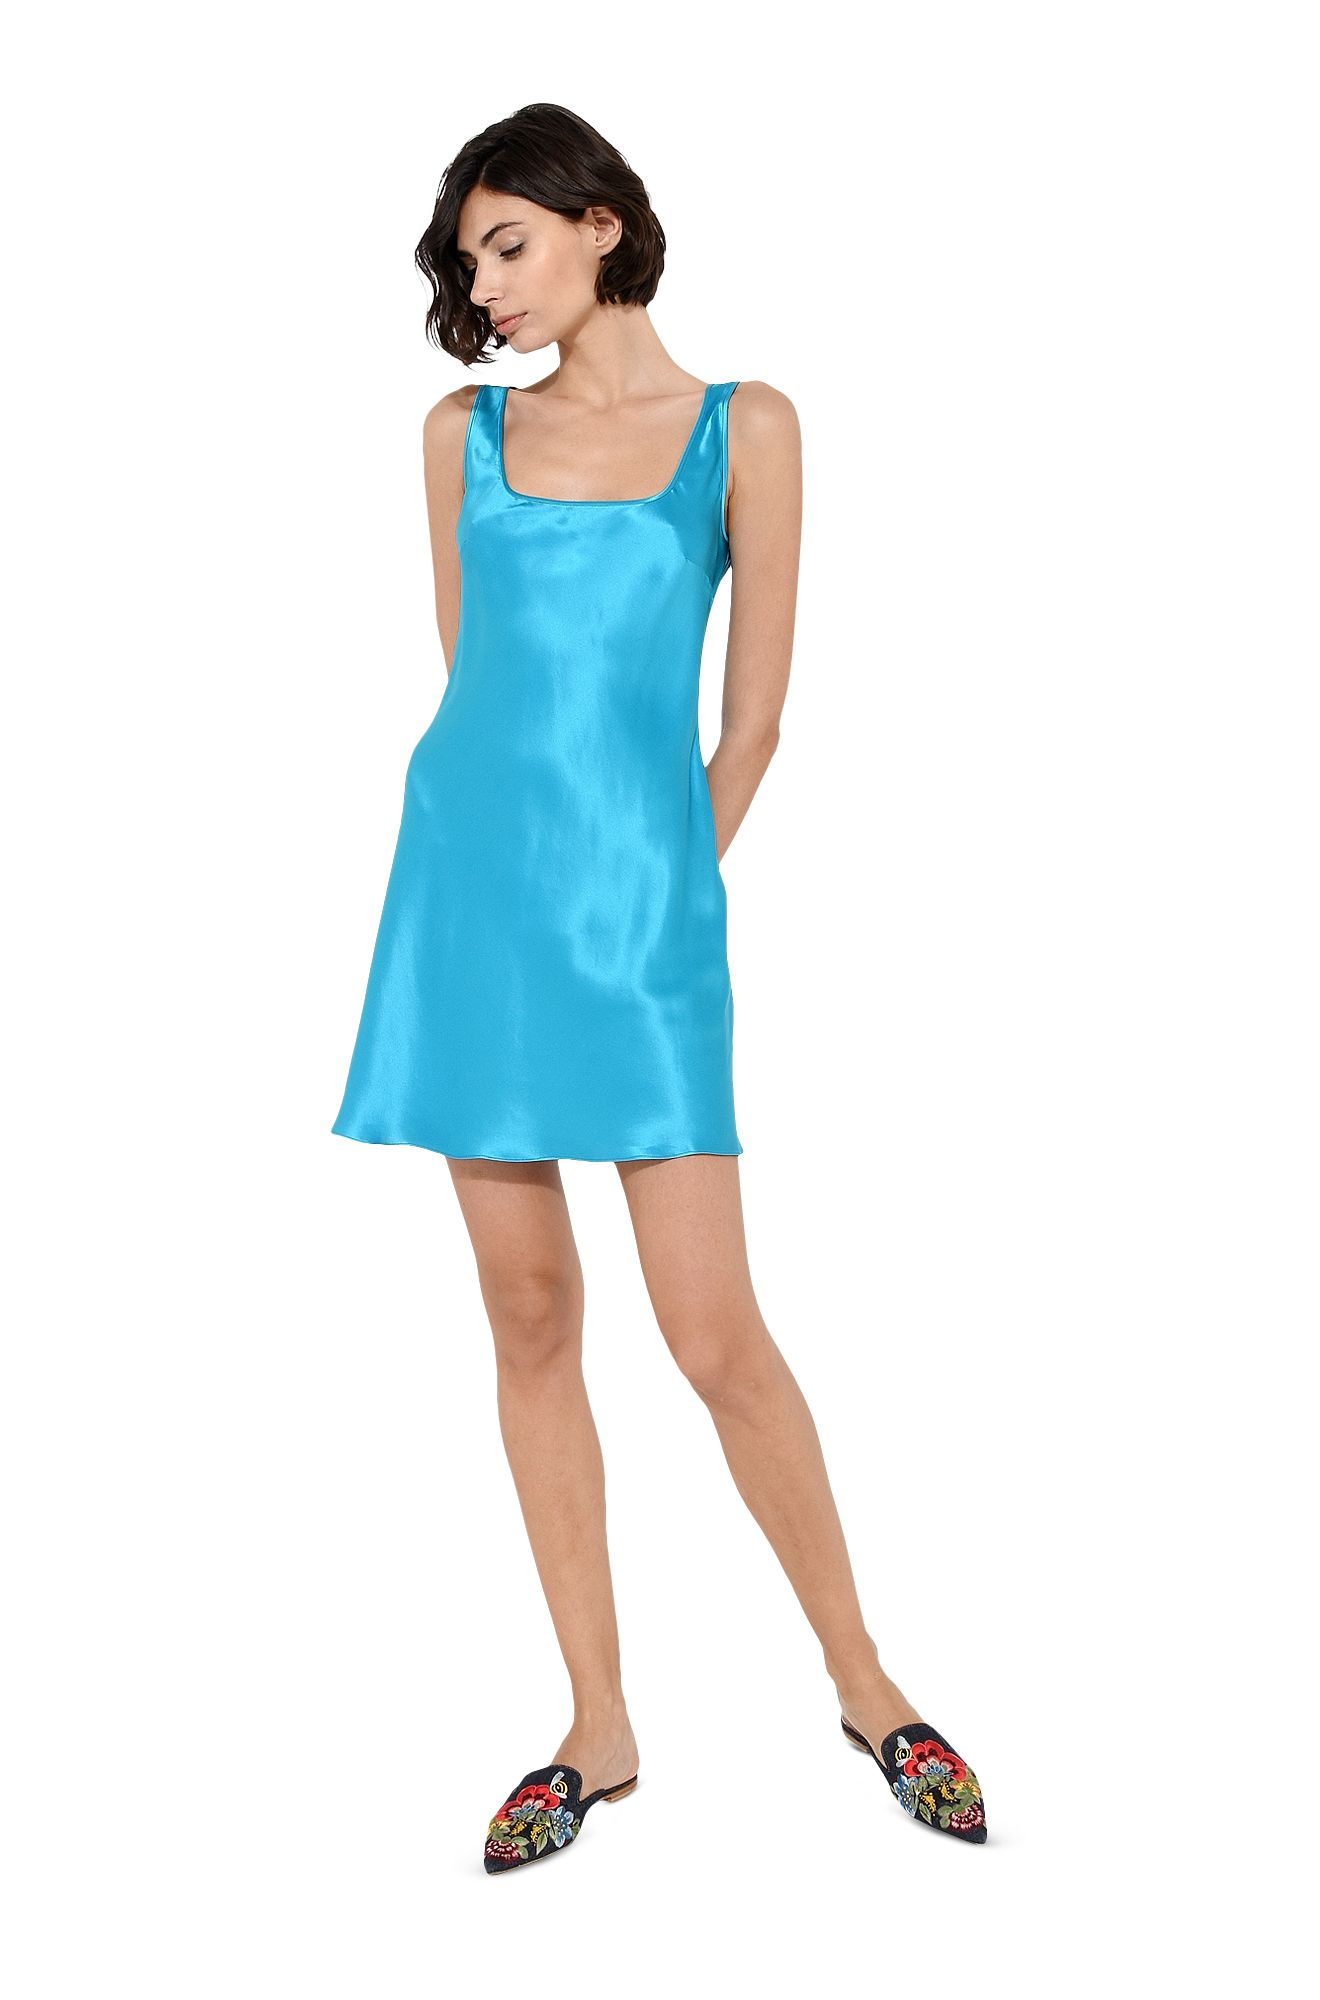 Bright blue camisole minidress